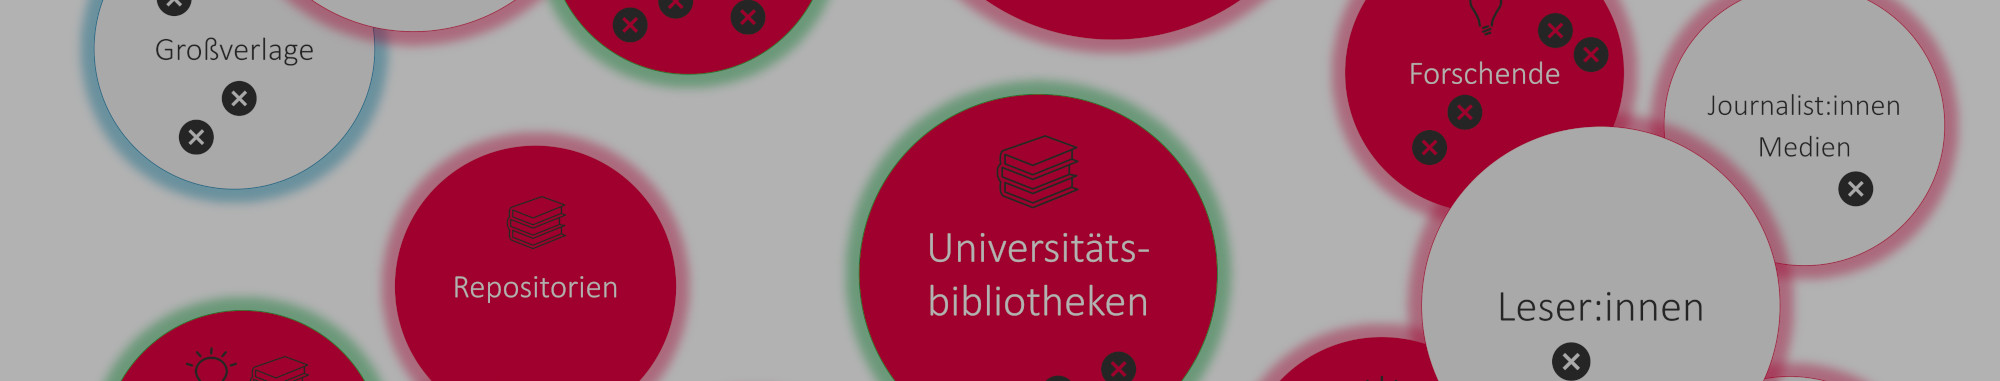 Stakeholder Open Access